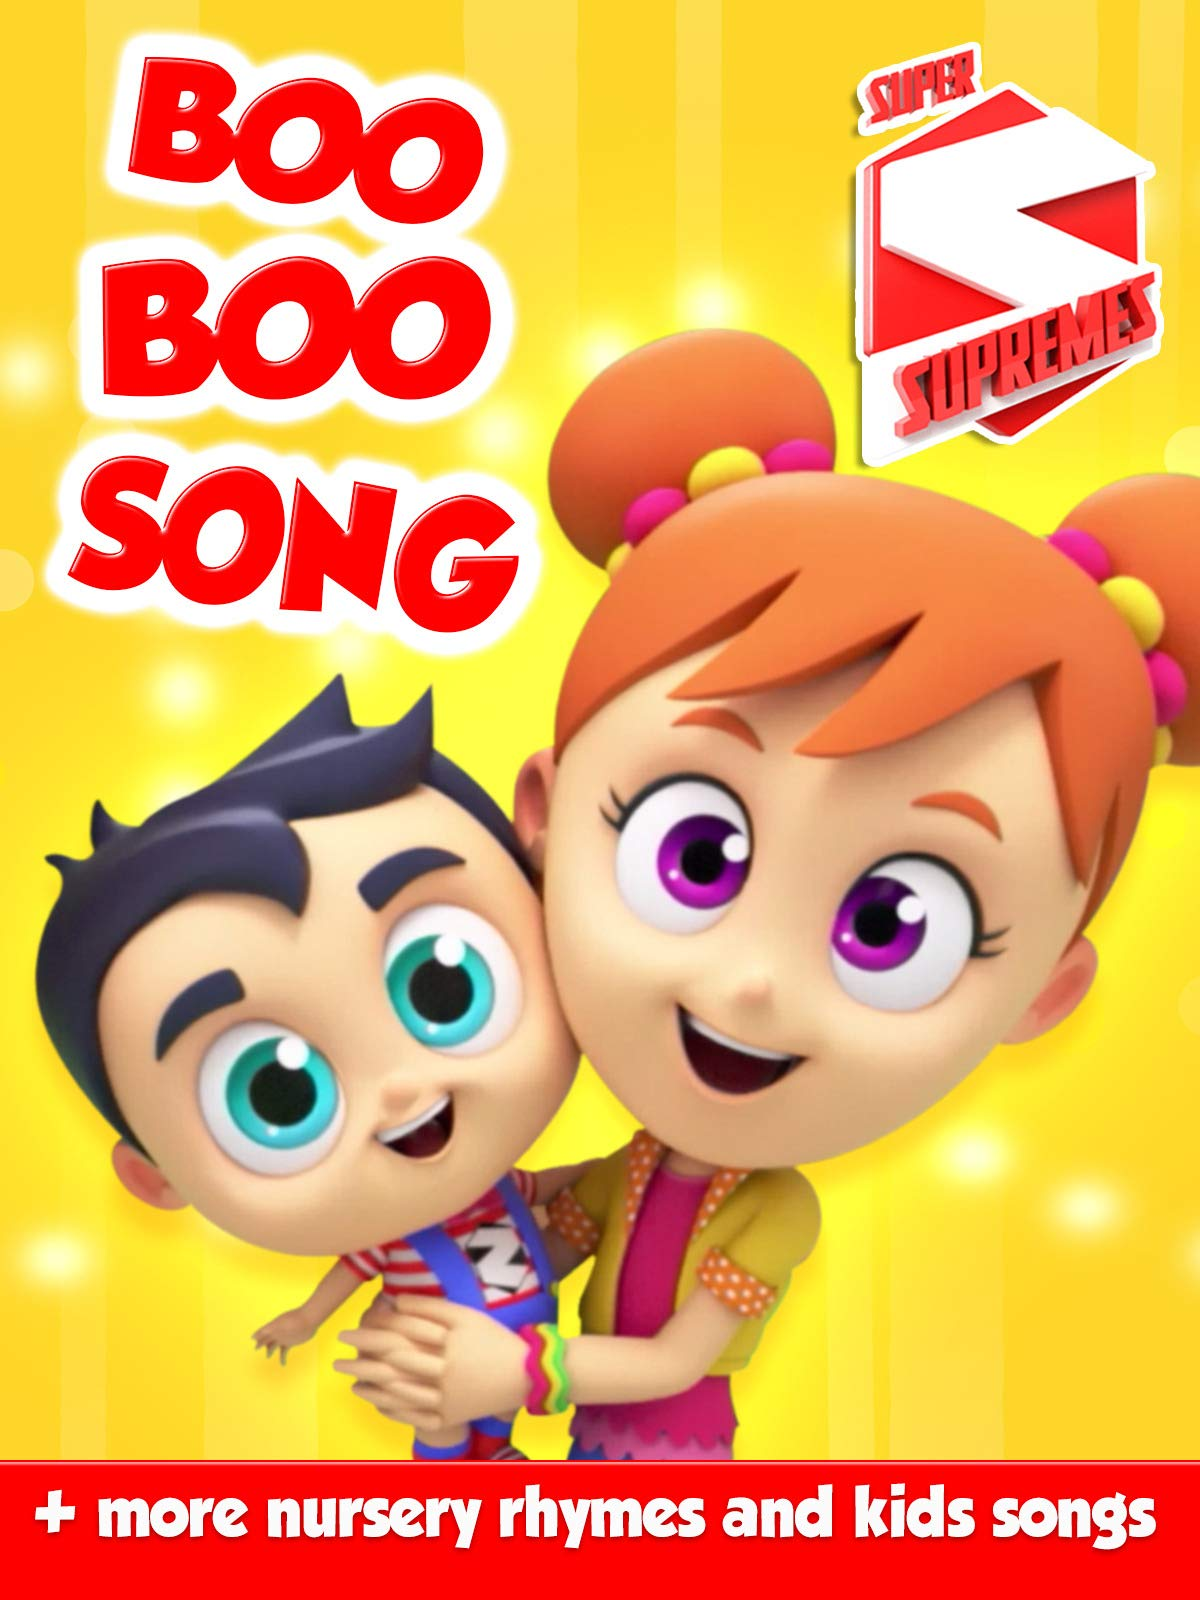 Boo Boo Song + More Nursery Rhymes and Kids Songs by Super Supremes